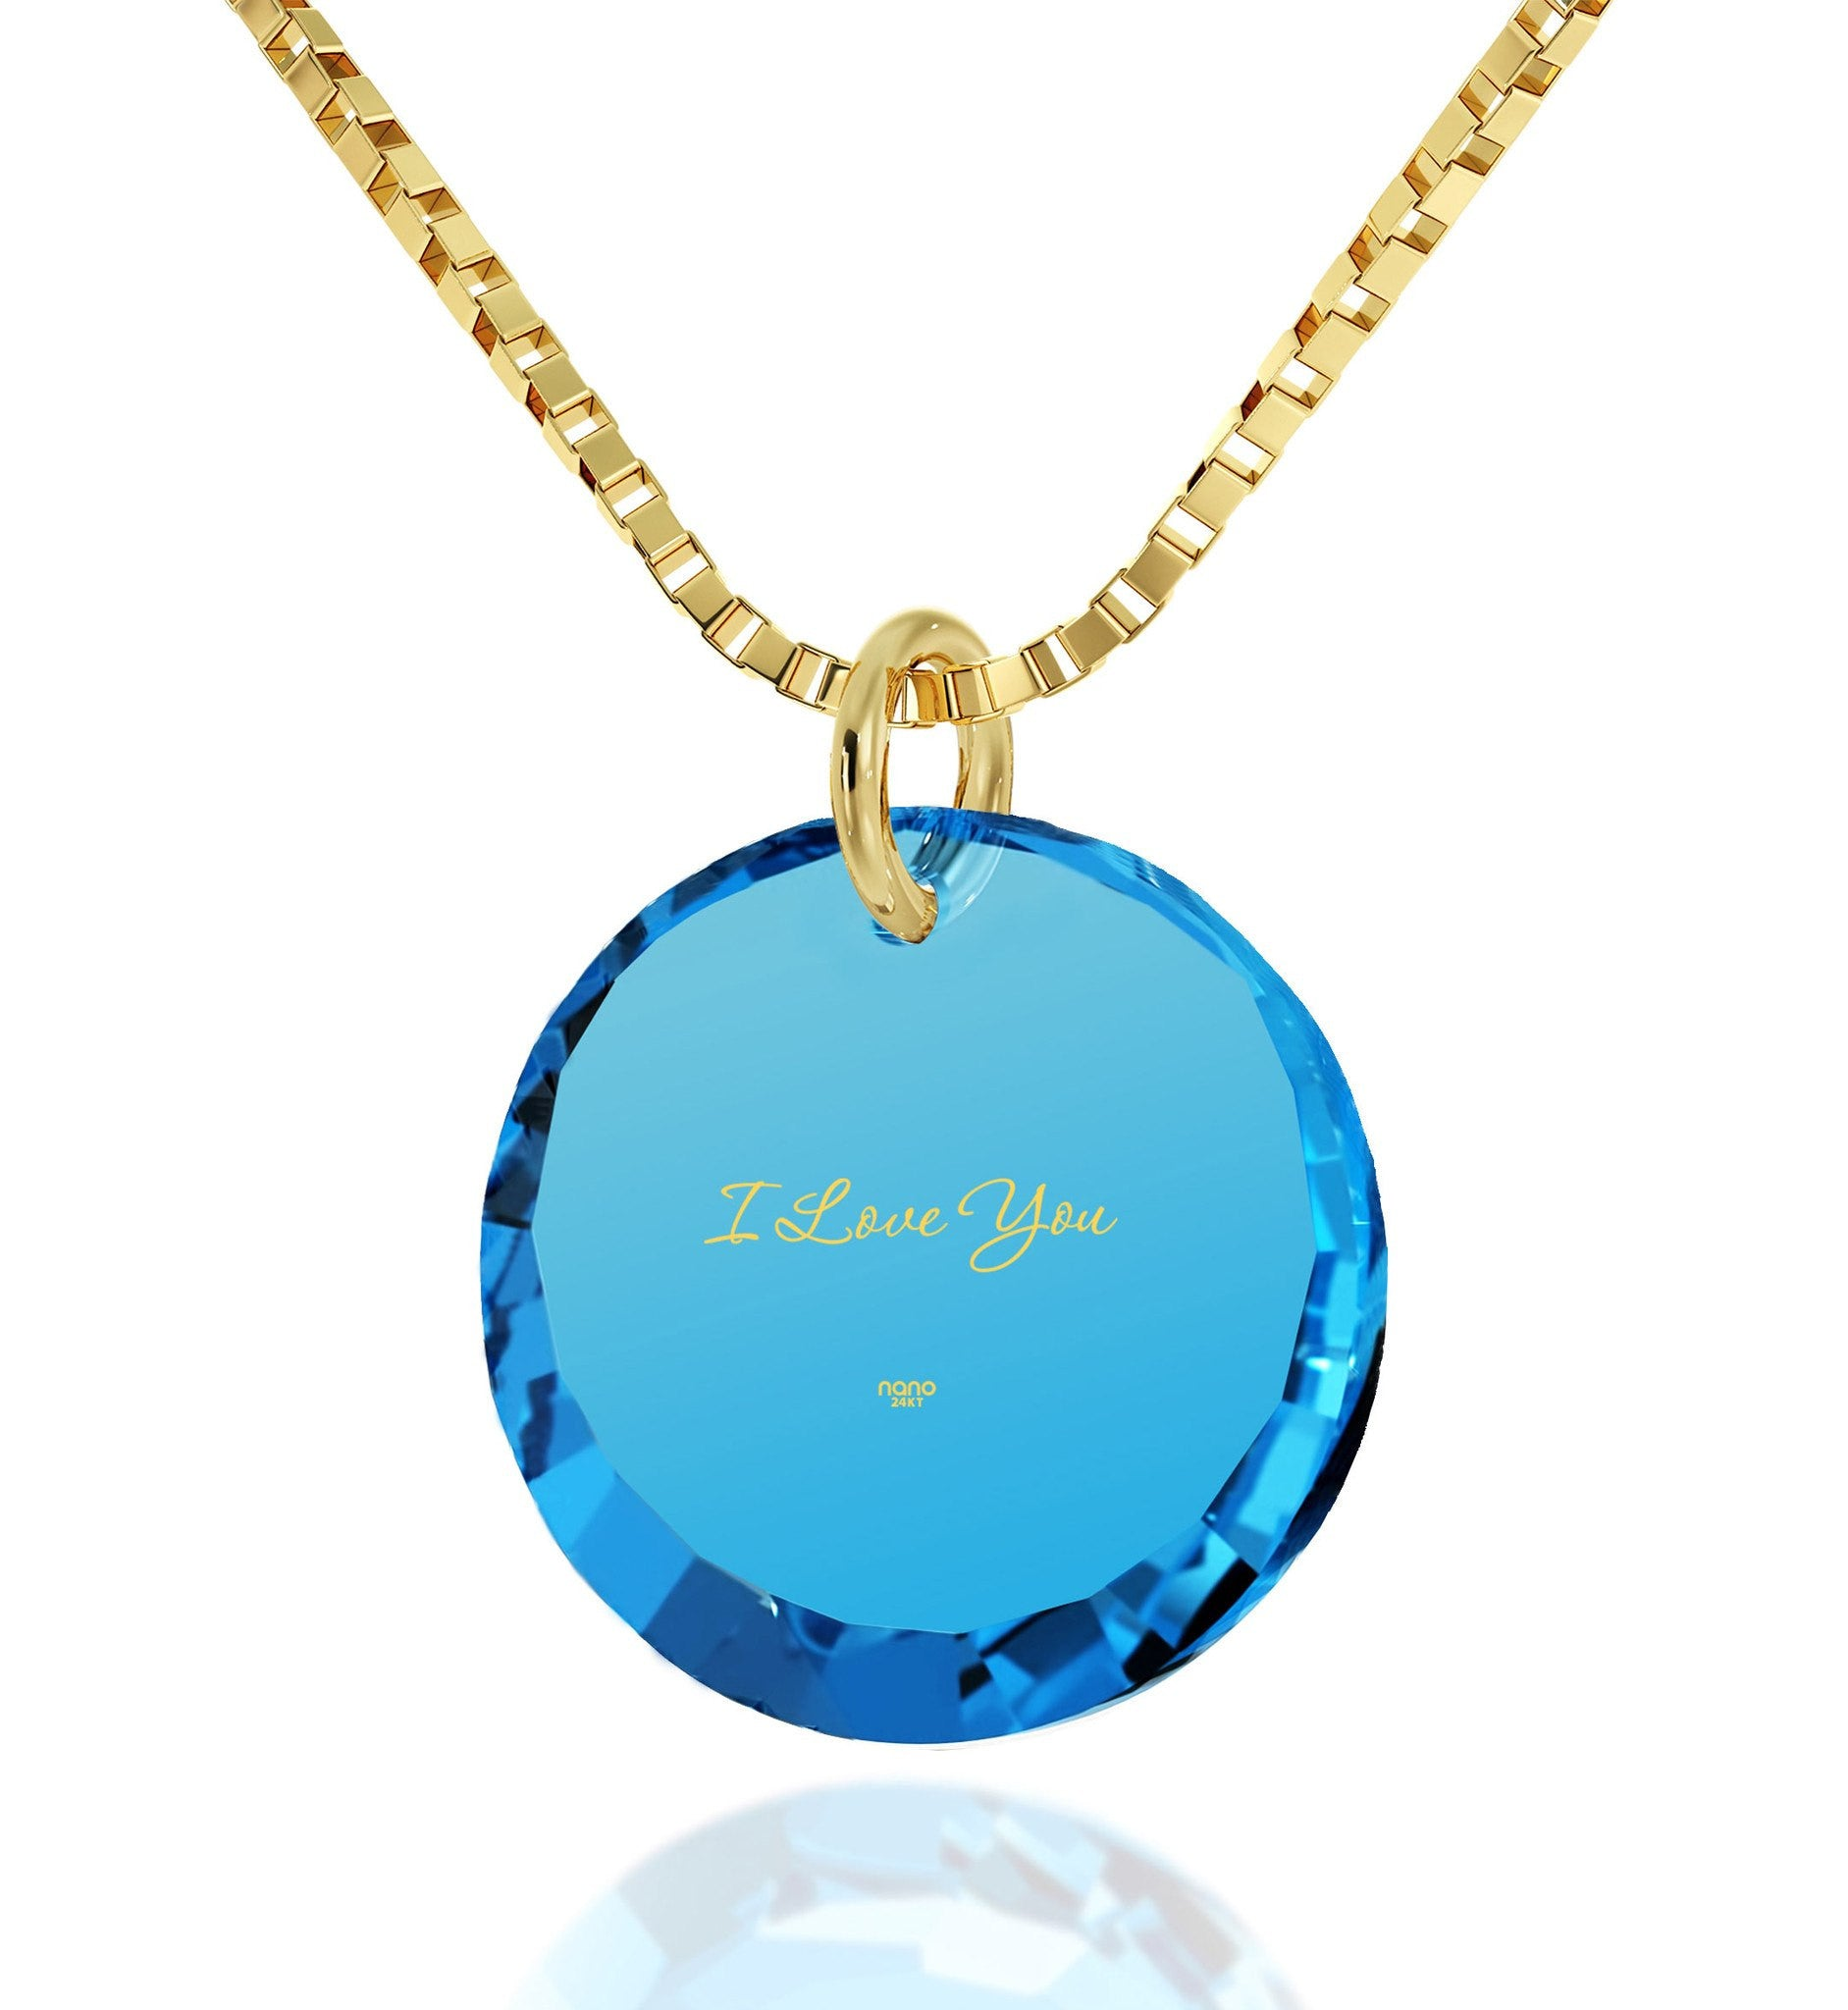 Top Womens Gifts, Blue Topaz Jewelry, Gold Plated Chains, 30th Birthday Present Ideas, Nano